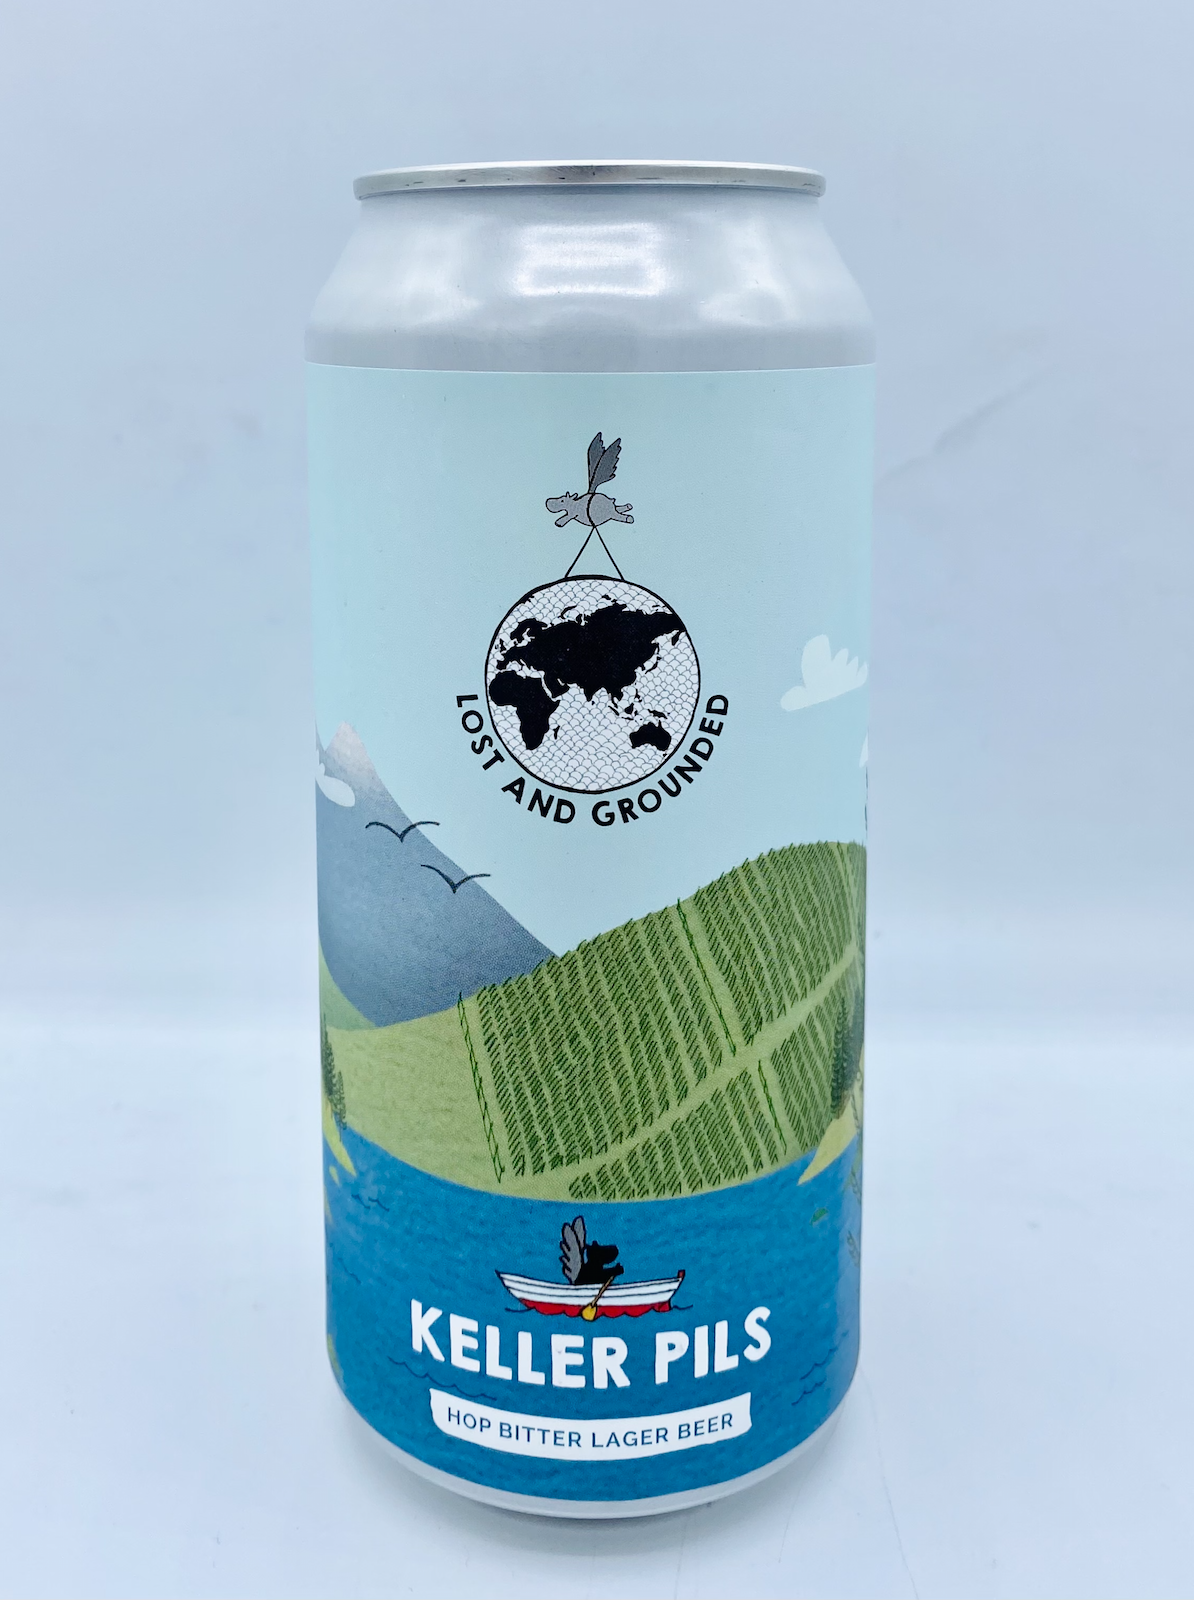 Lost & Grounded - Keller Pils 4.8%